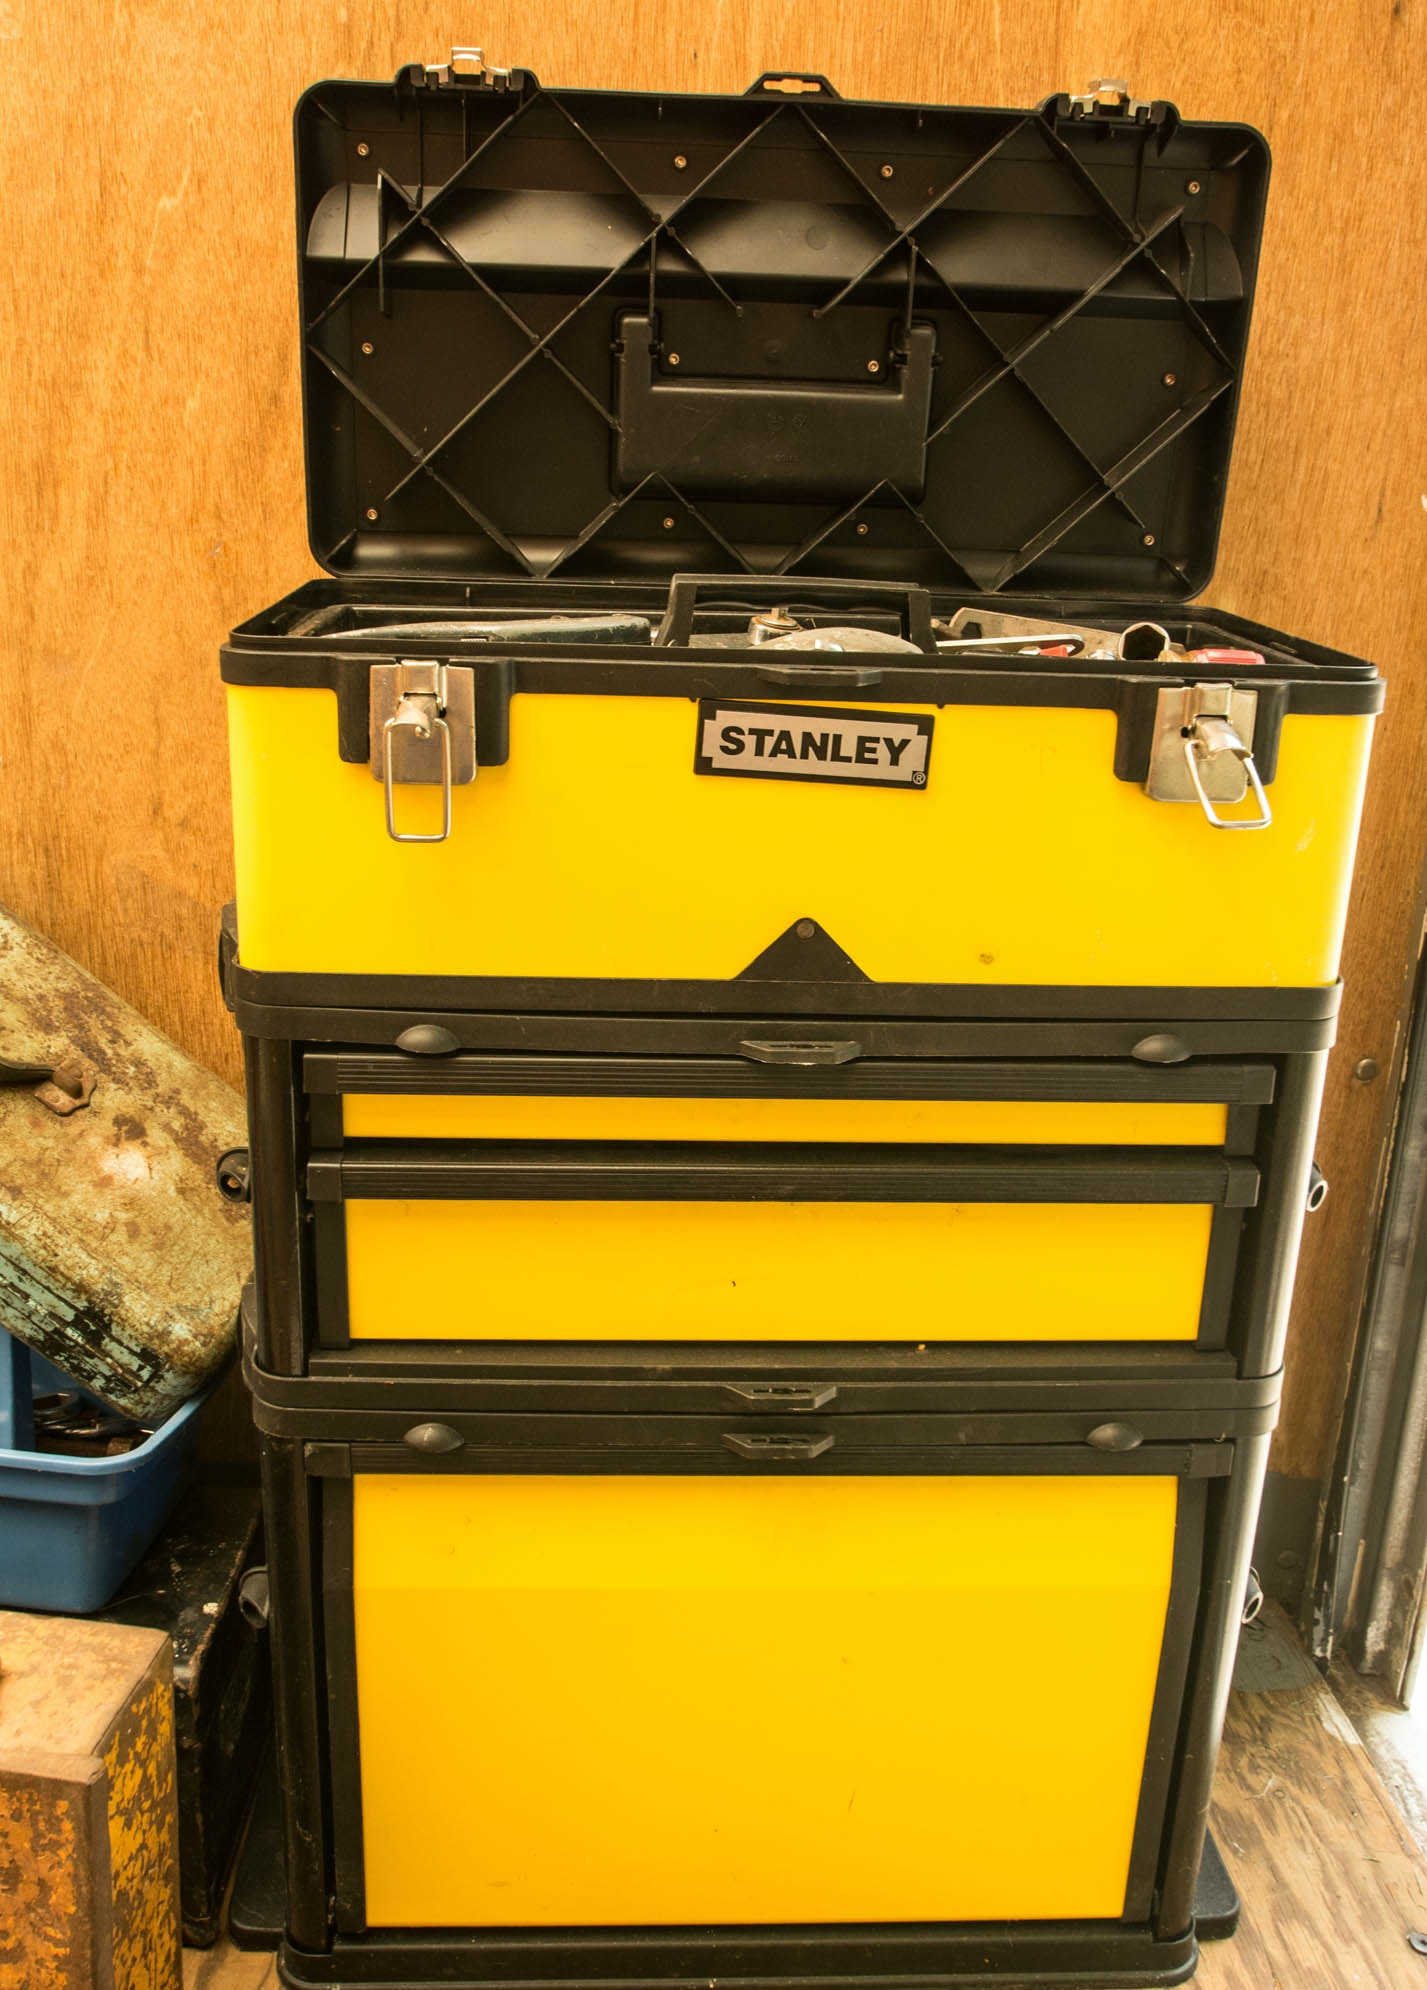 Stanley Rolling Toolbox with Tools